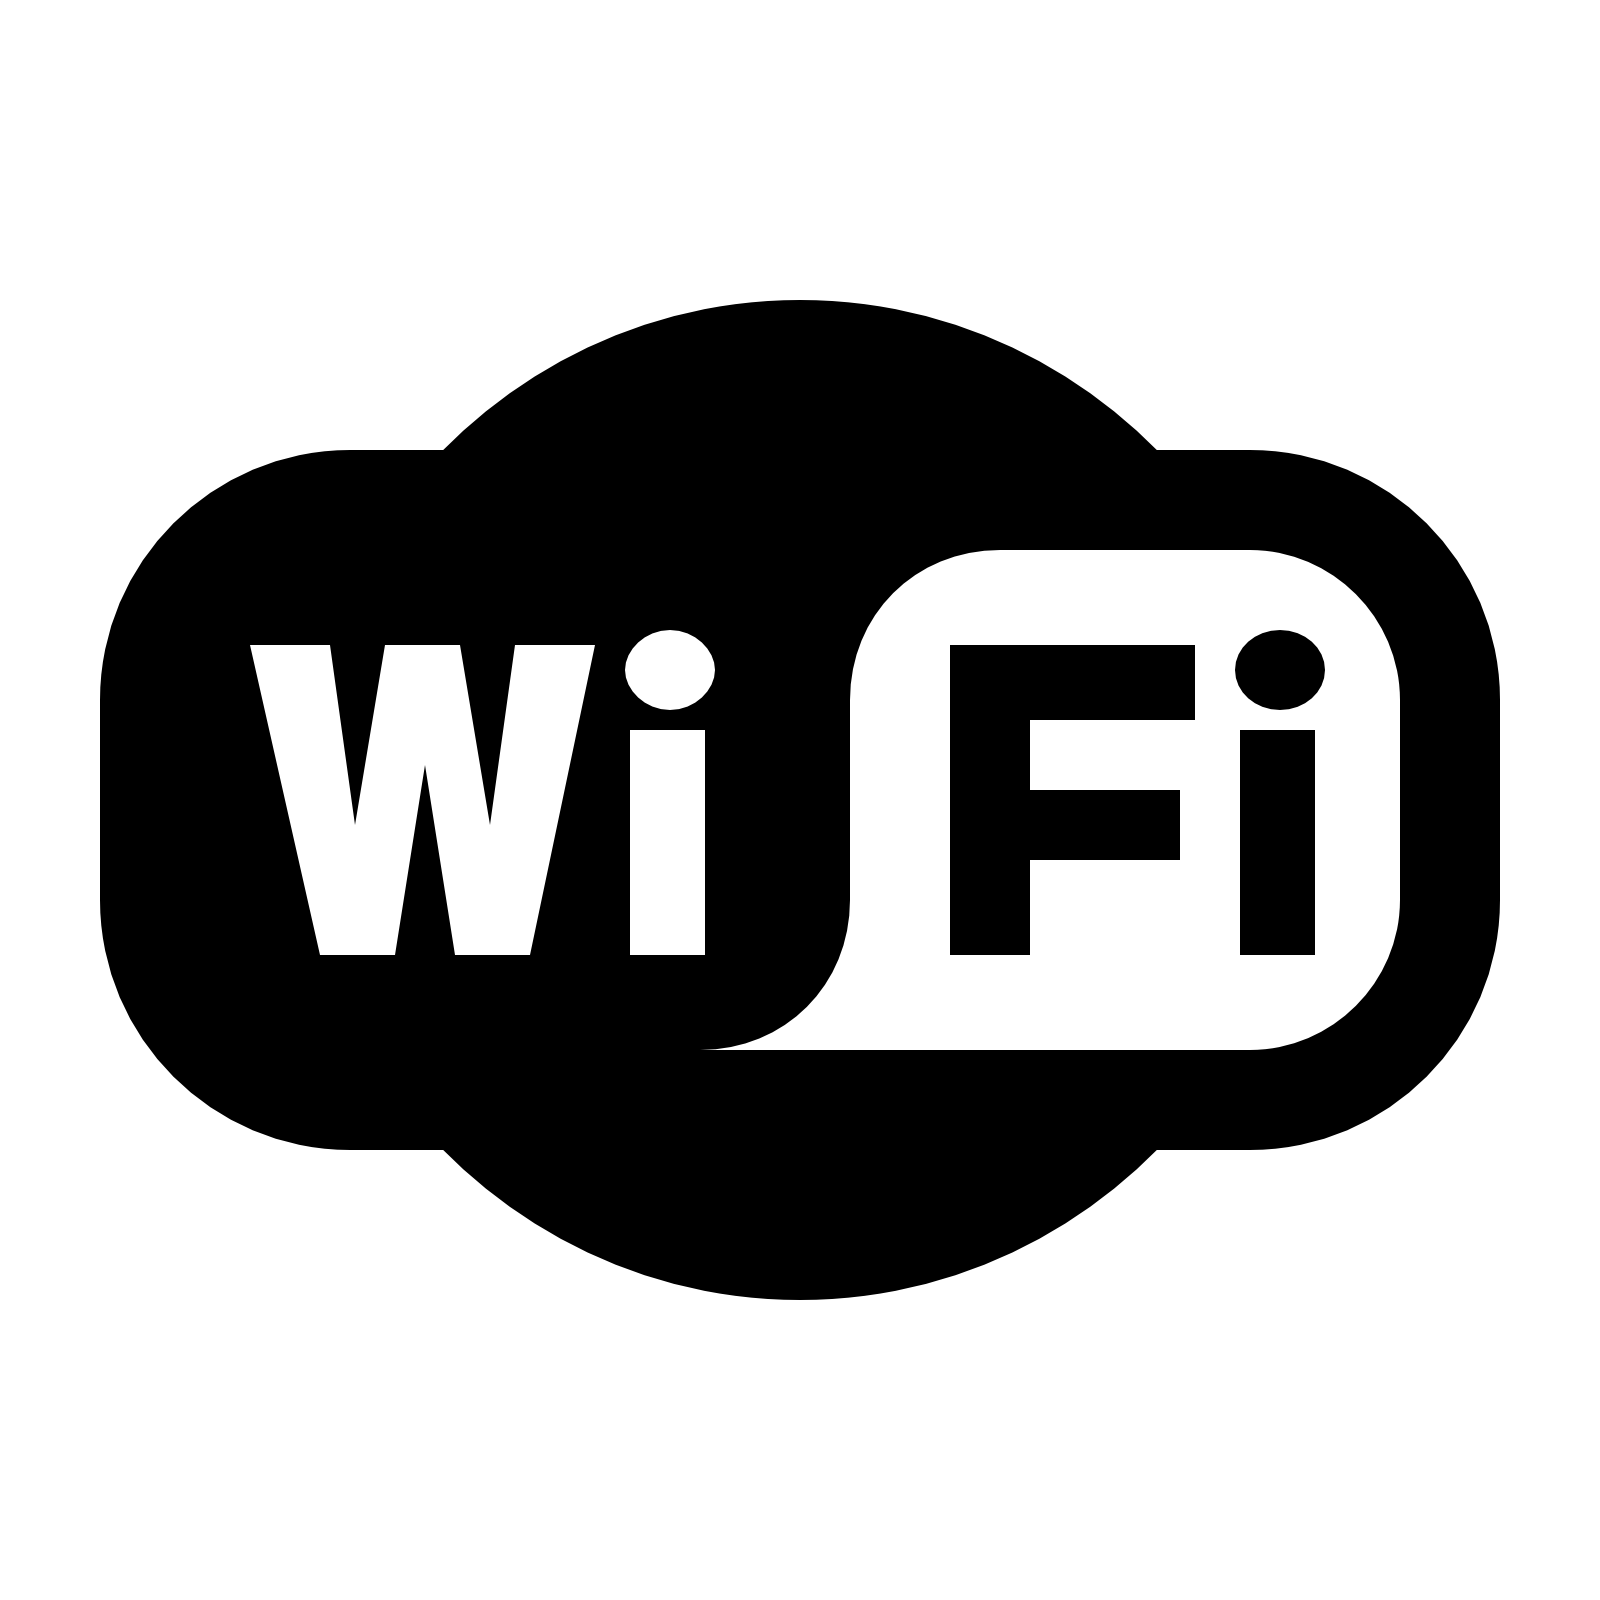 wifi Mypublicwifi is an easy-to-use software that turns your laptop/pc into a wi-fi wireless access point anyone nearby can surf the internet through your sharing.